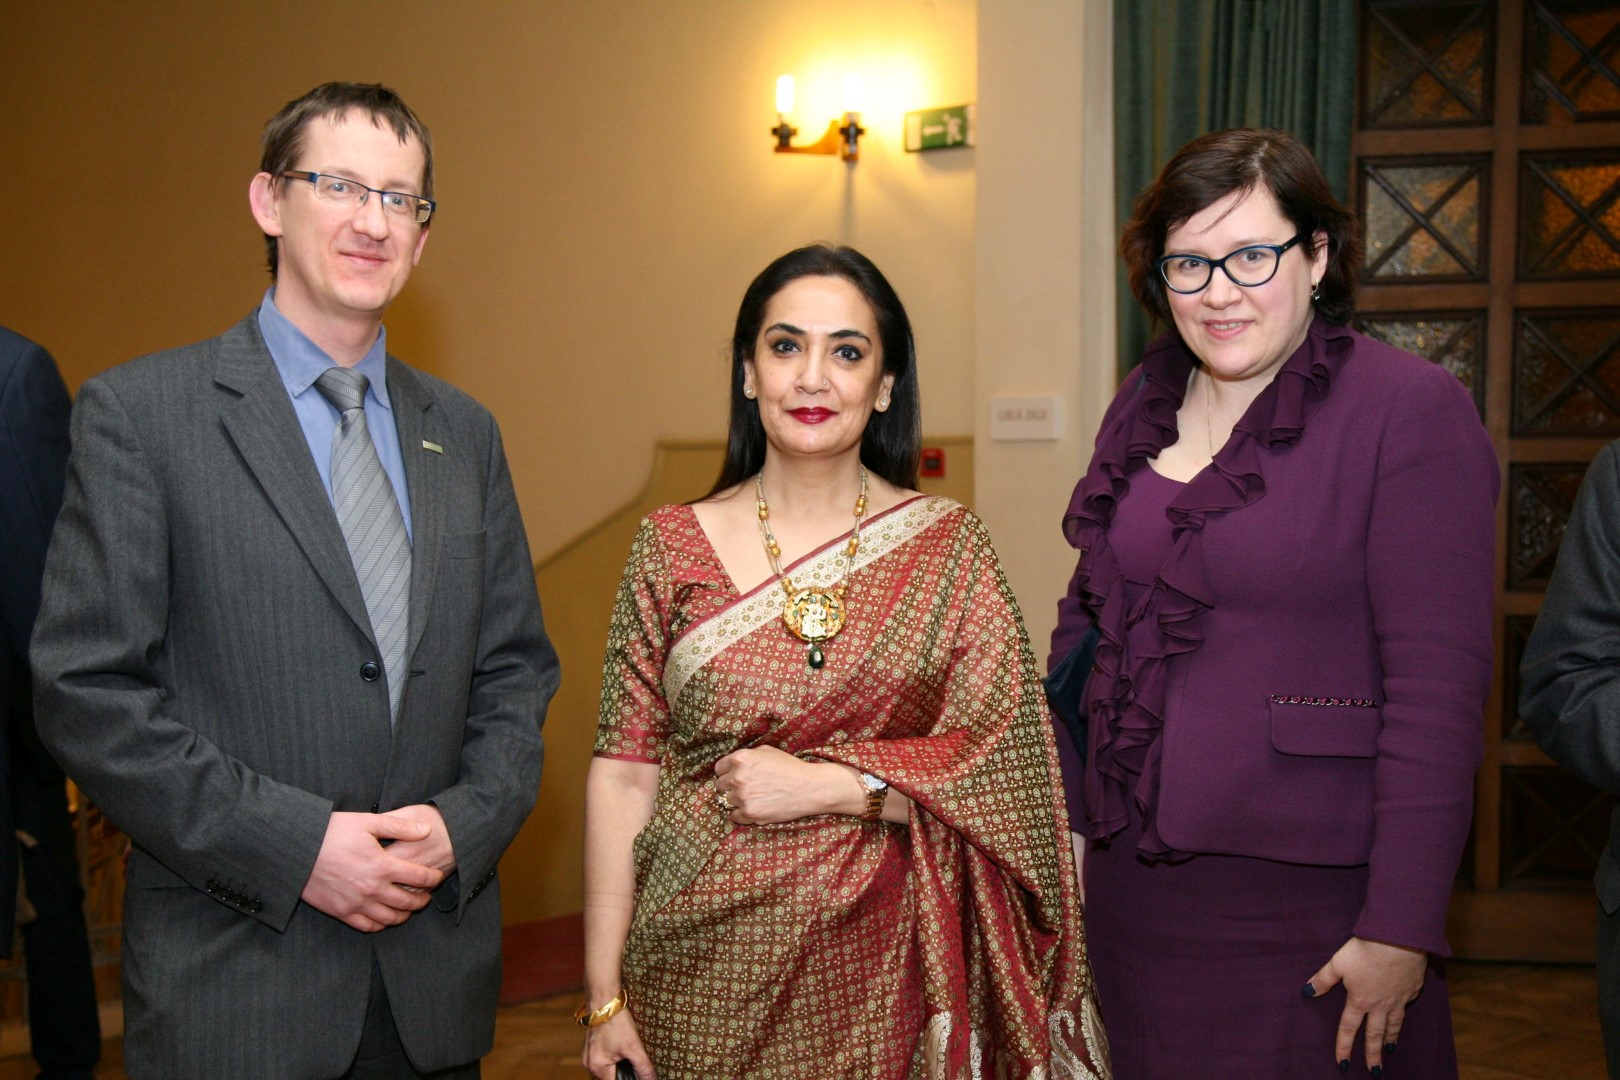 rigvir-holding-participates-in-diplomatic-reception-of-embassy-of-india